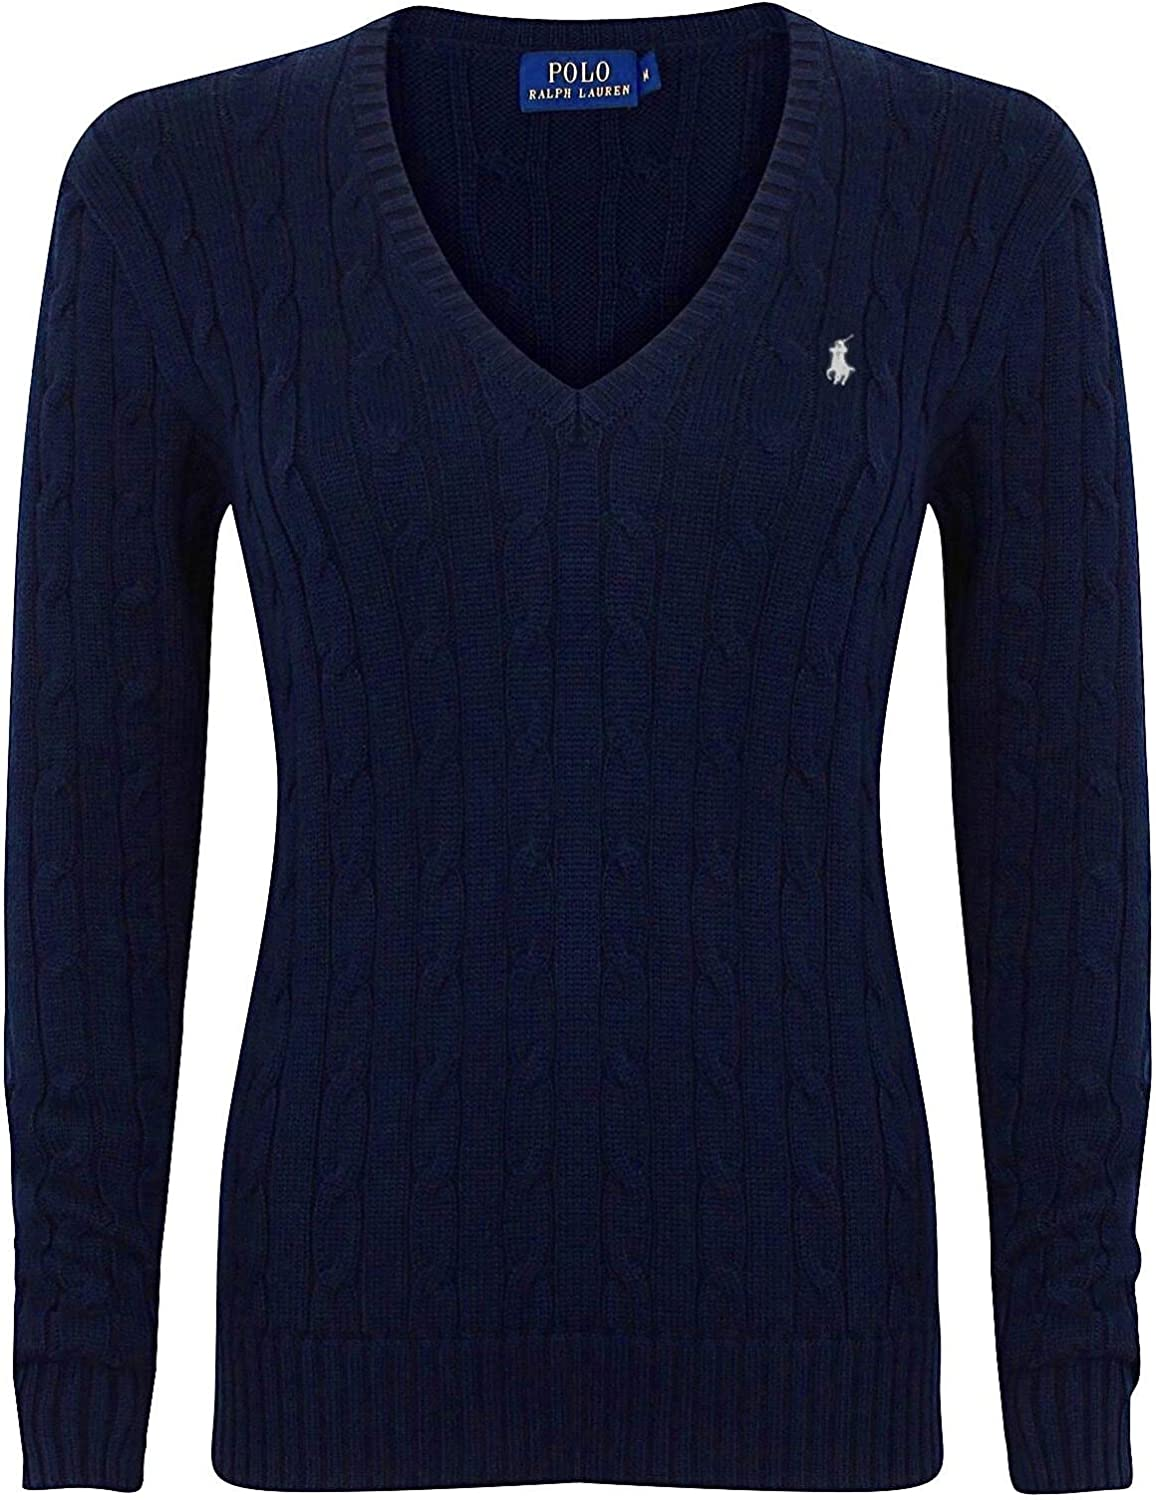 Polo Ralph Lauren Cable Knit V-Neck Cotton Jersey Kimberly Polo ...